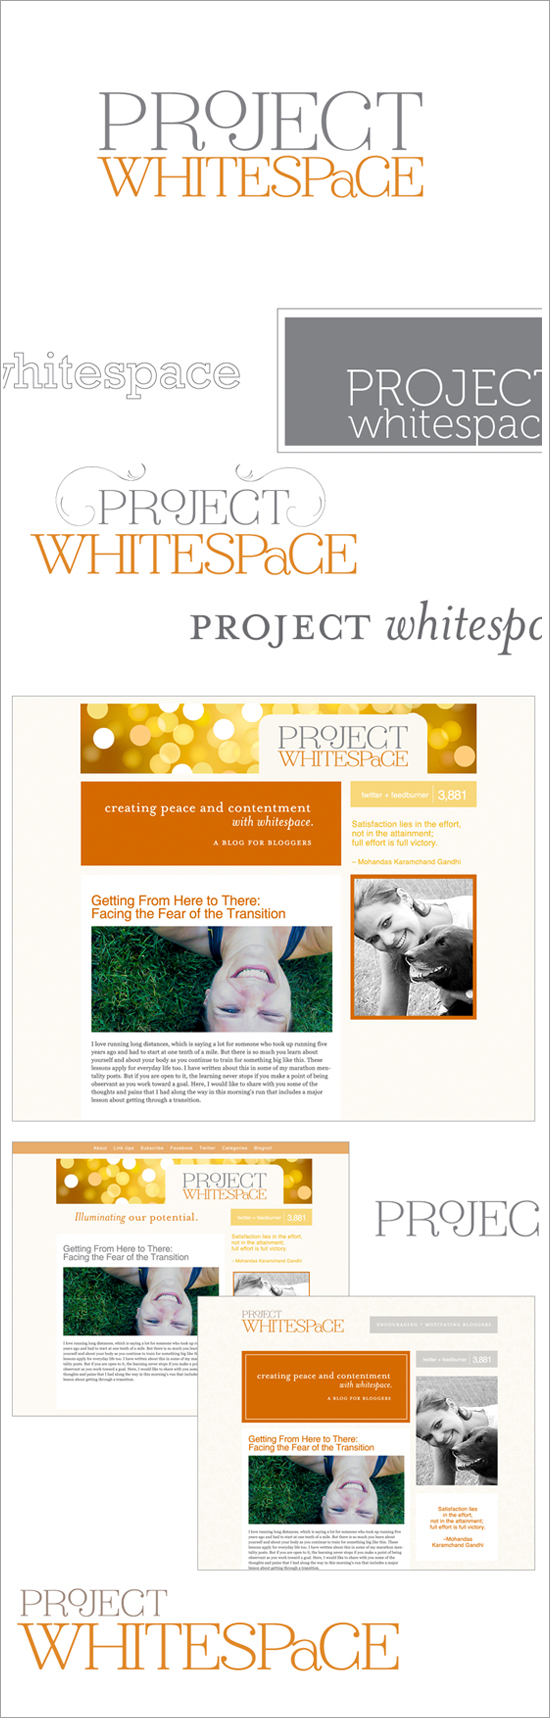 projectwhitespace copy